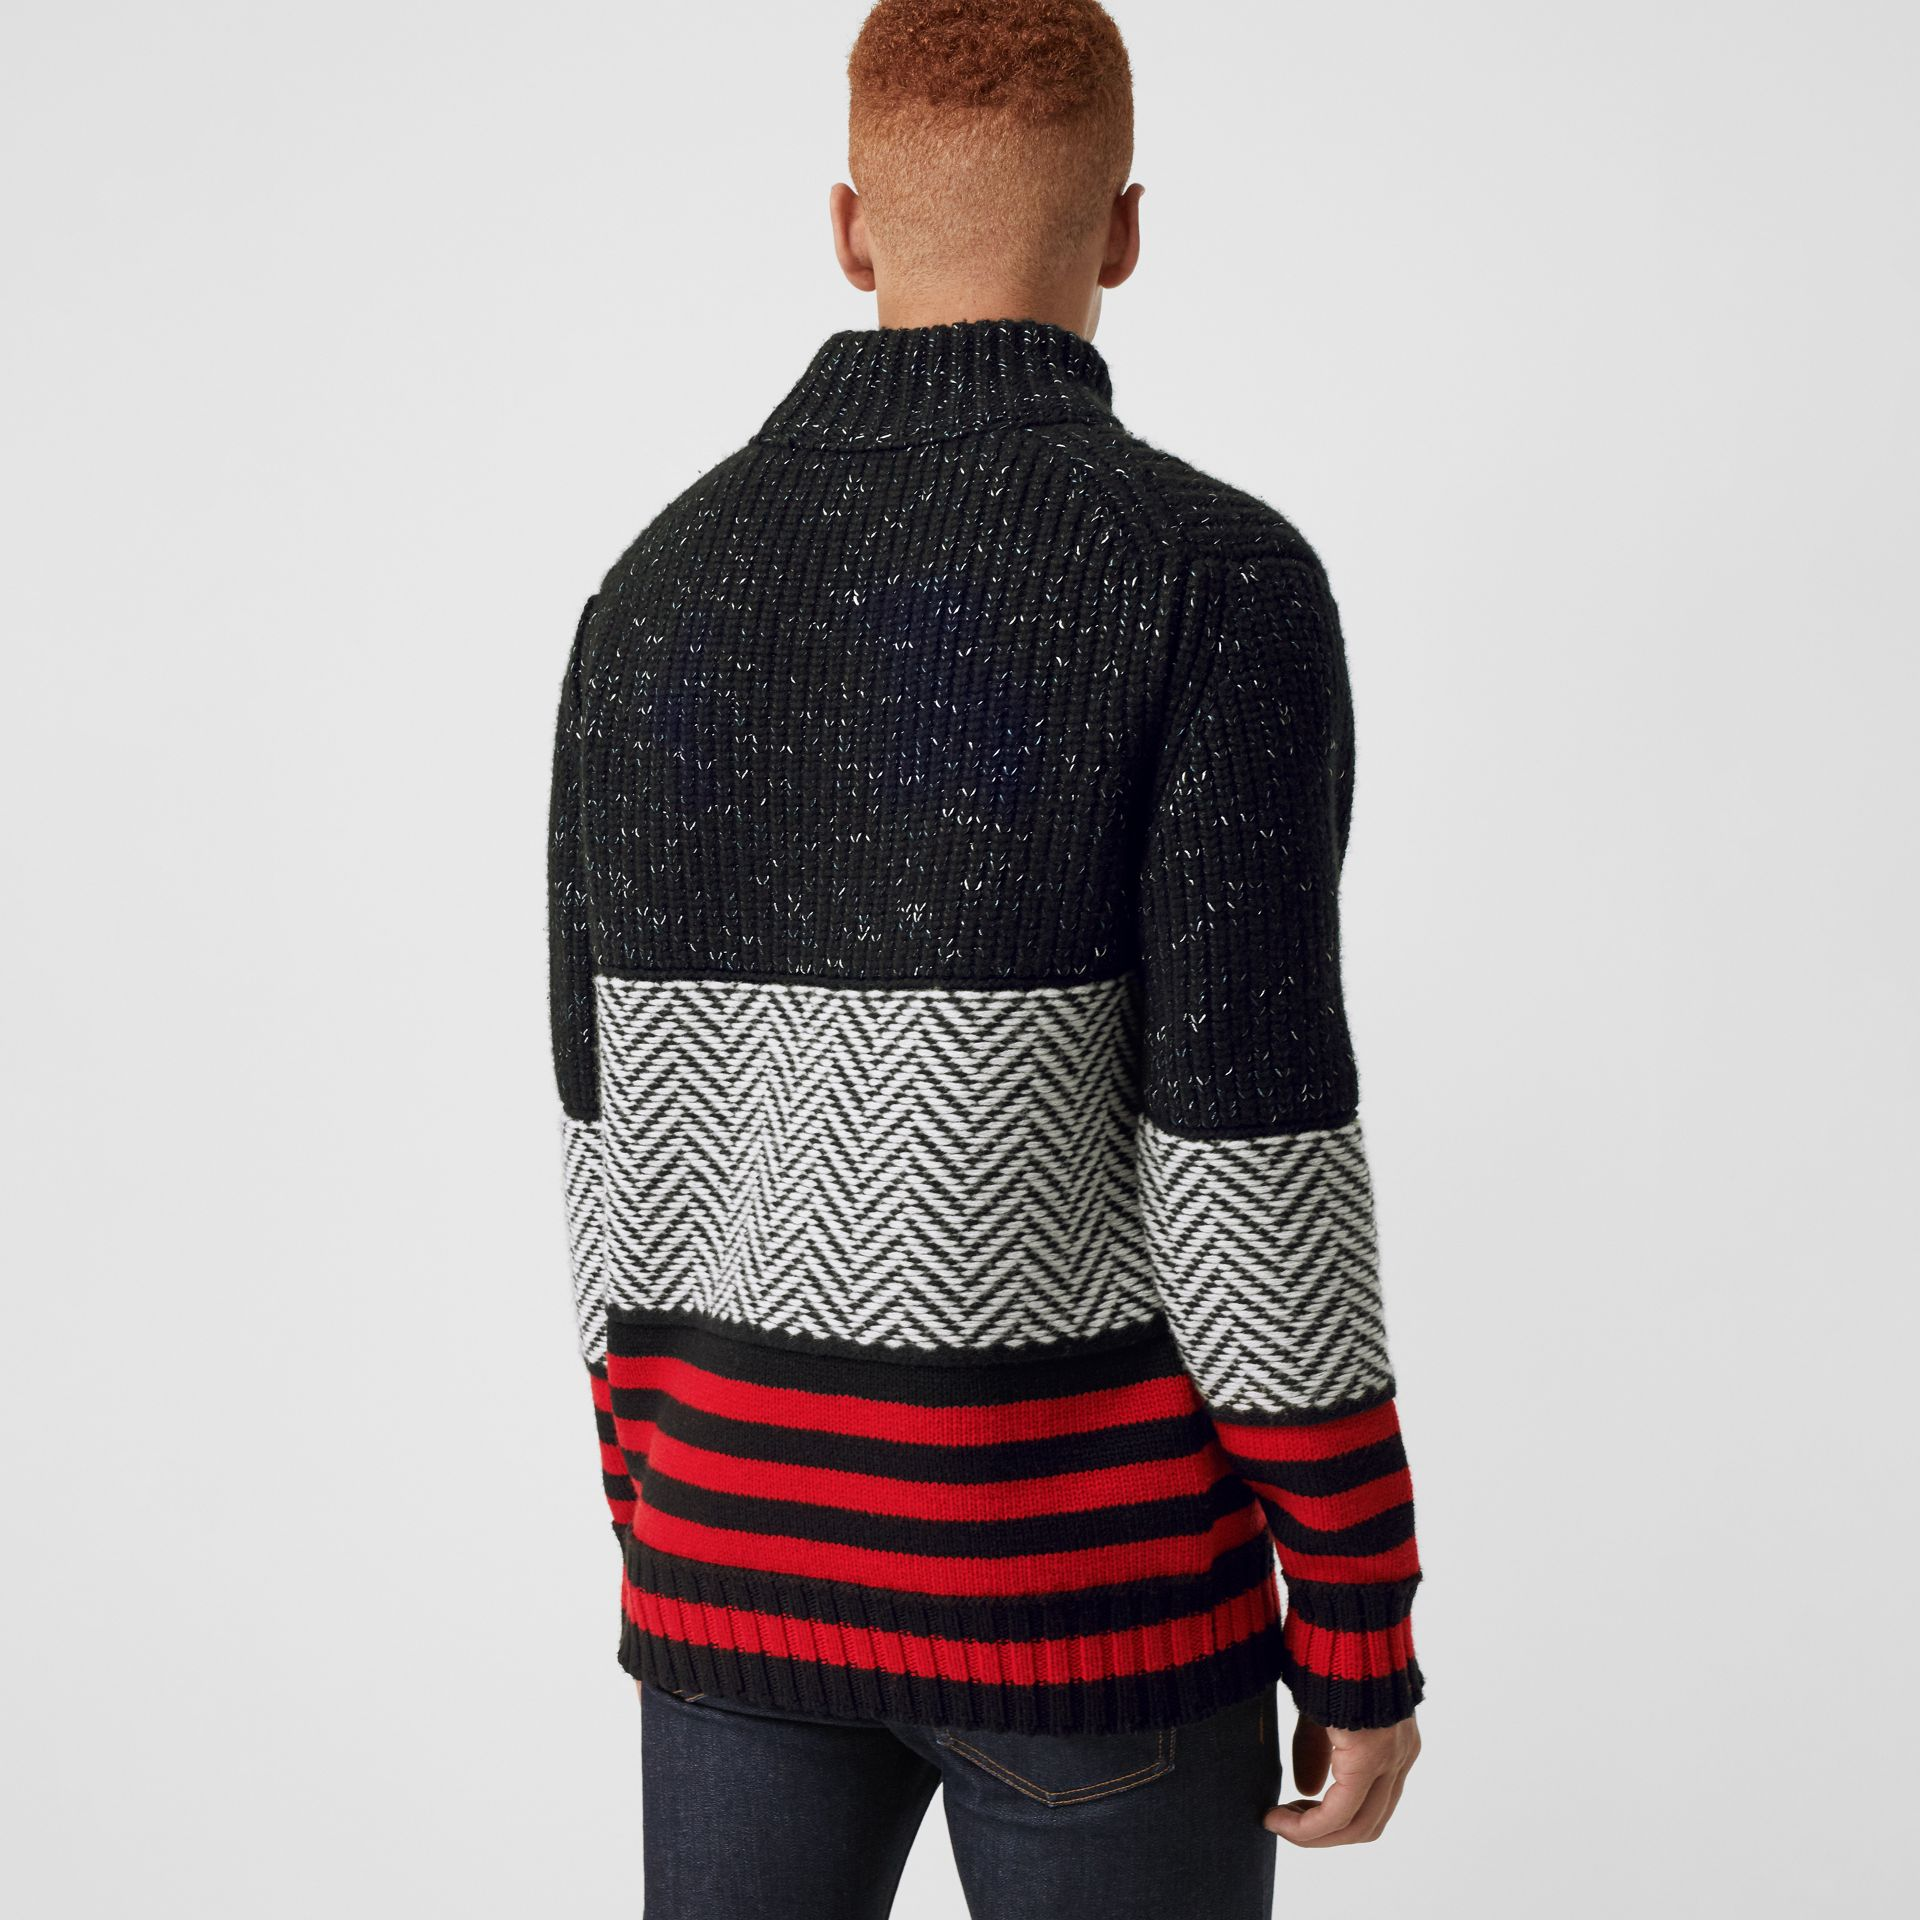 Contrast Knit Wool Cashmere Blend Sweater in Black - Men | Burberry United States - gallery image 2